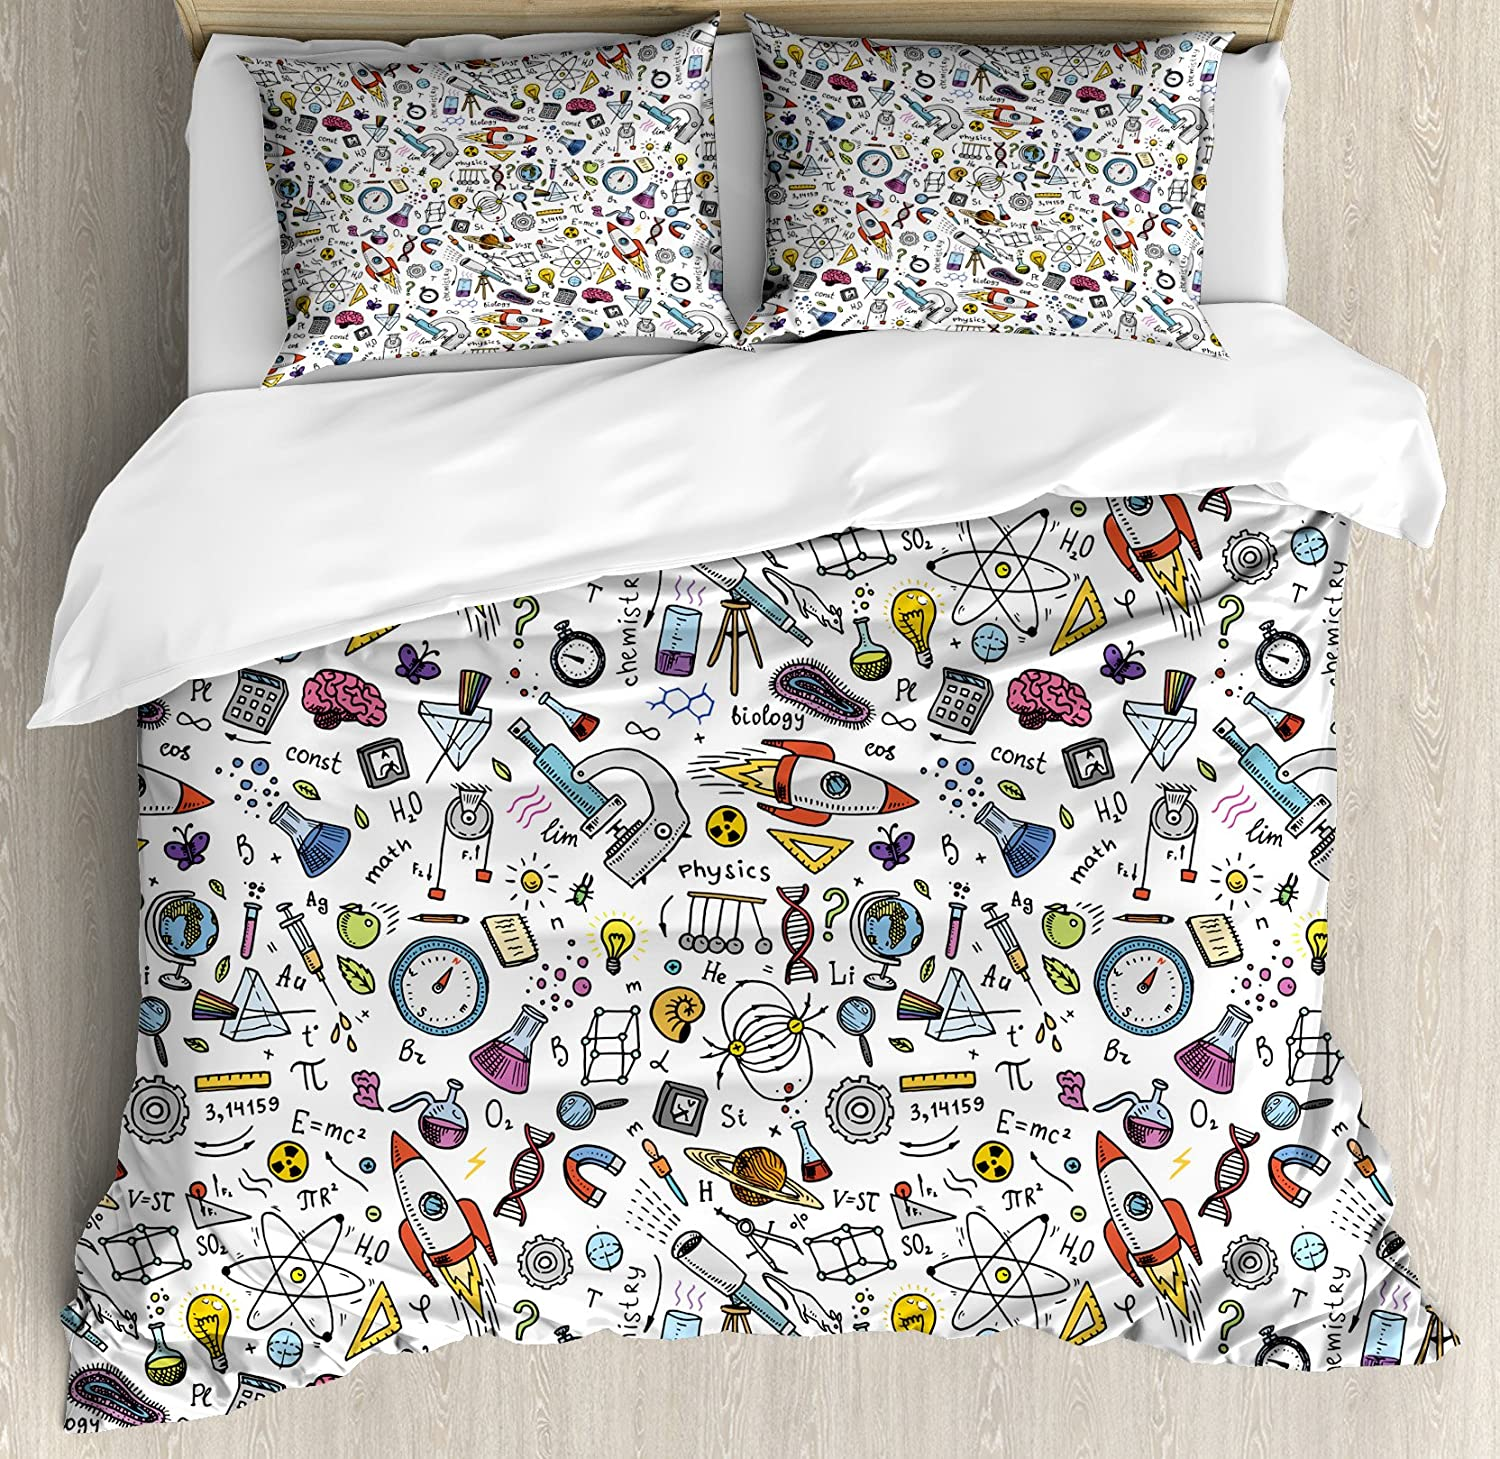 Ambesonne Science Duvet Cover High quality Deluxe new Formulas Pattern Set Labo